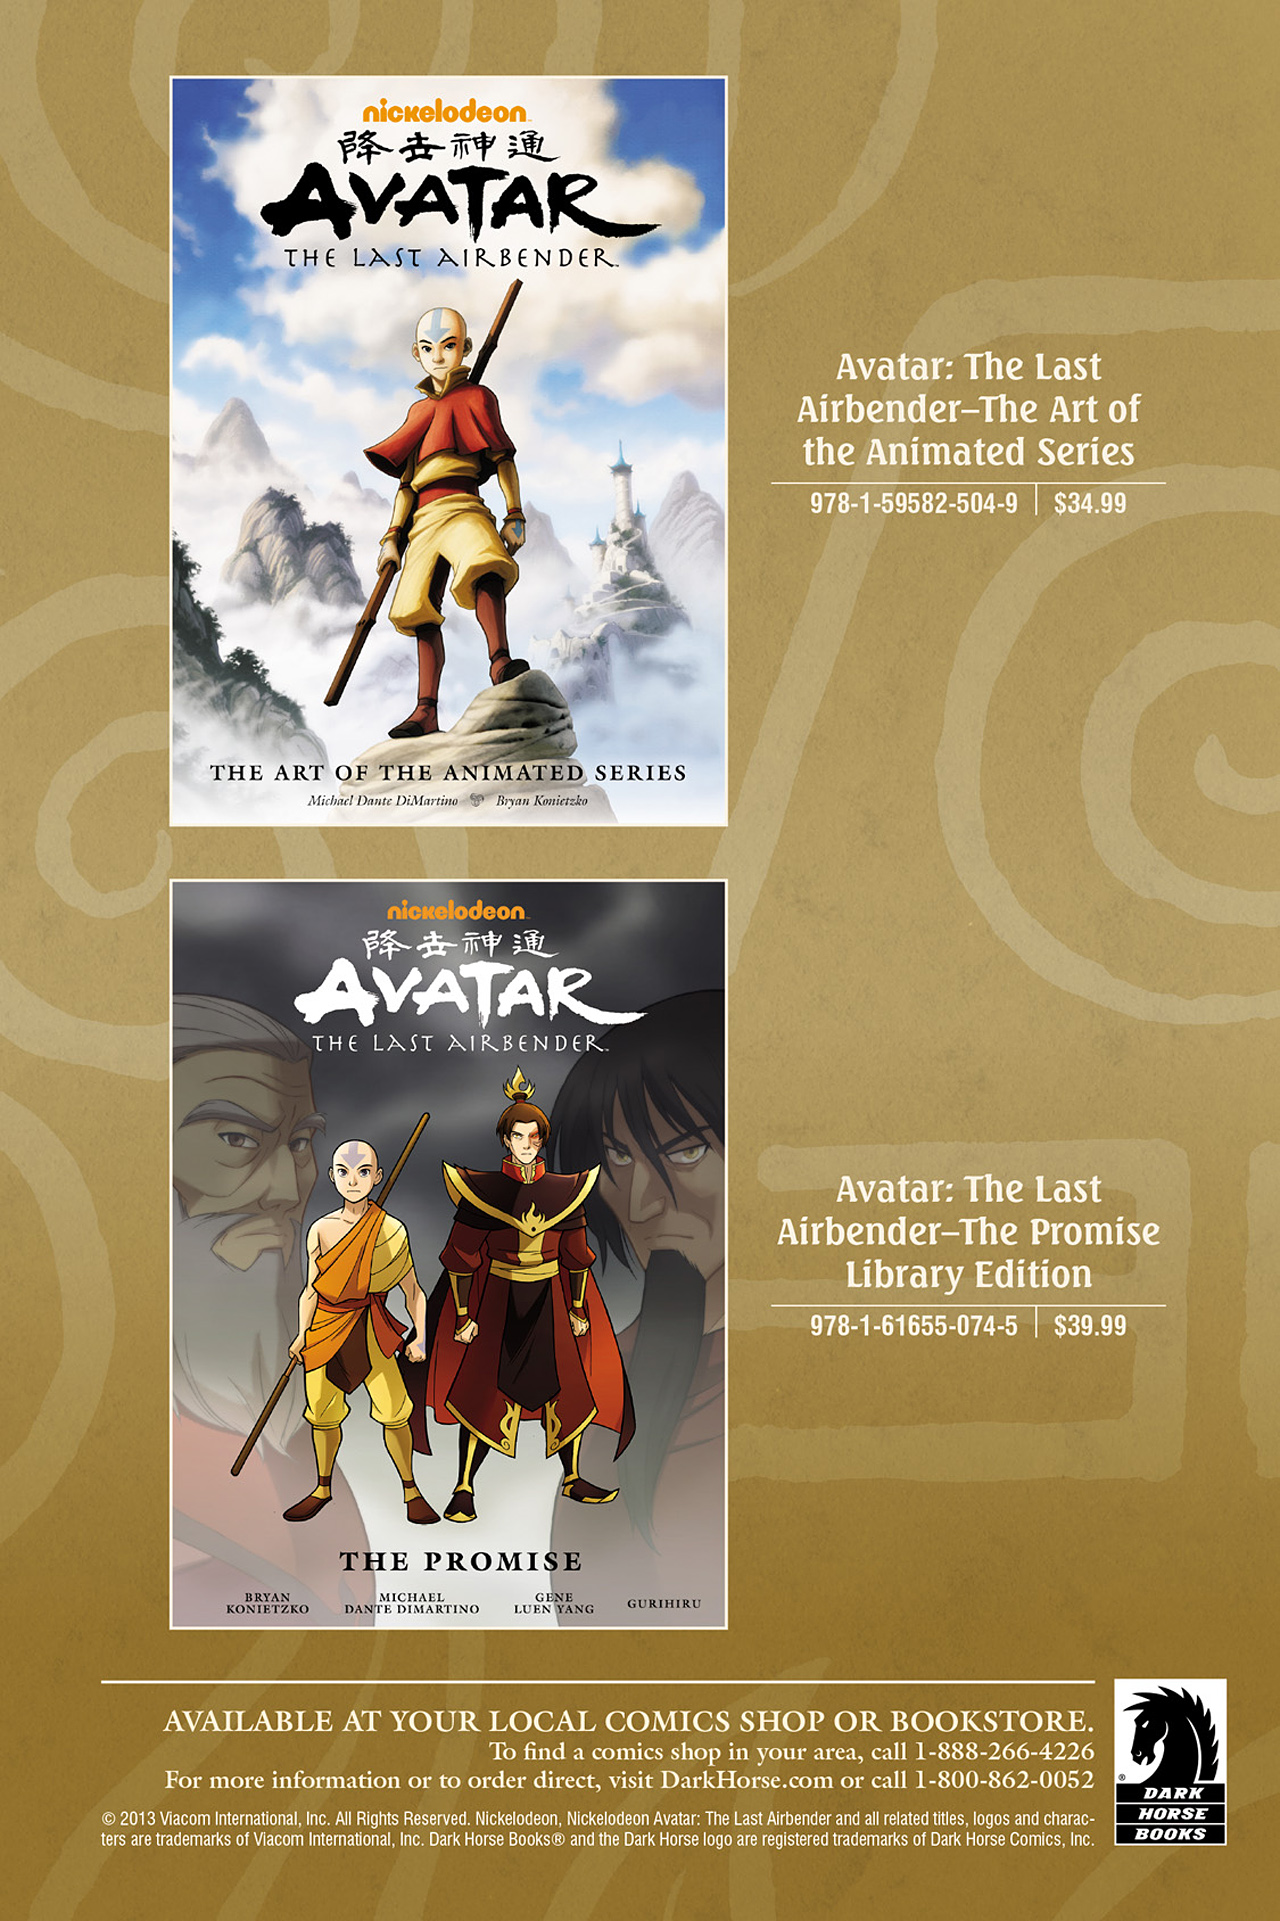 Read online Nickelodeon Avatar: The Last Airbender - The Search comic -  Issue # Part 2 - 80